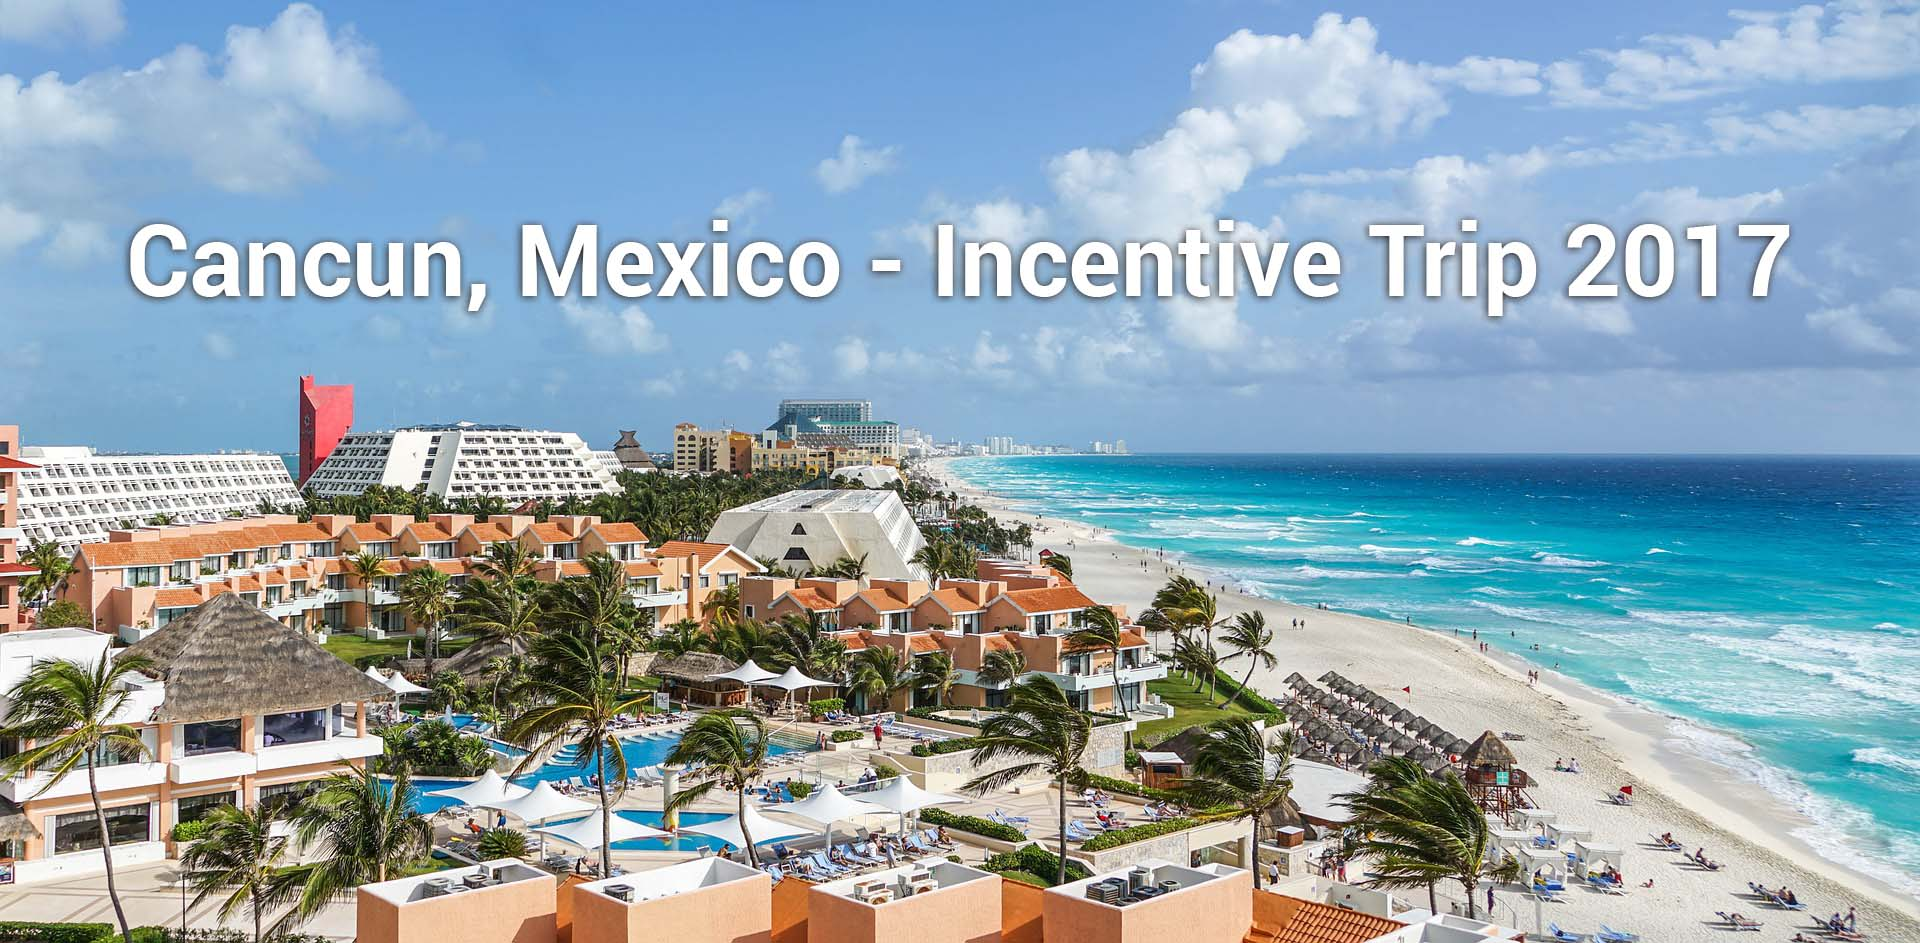 Cancun Incentive Trip 2017 - May 17th through 21st